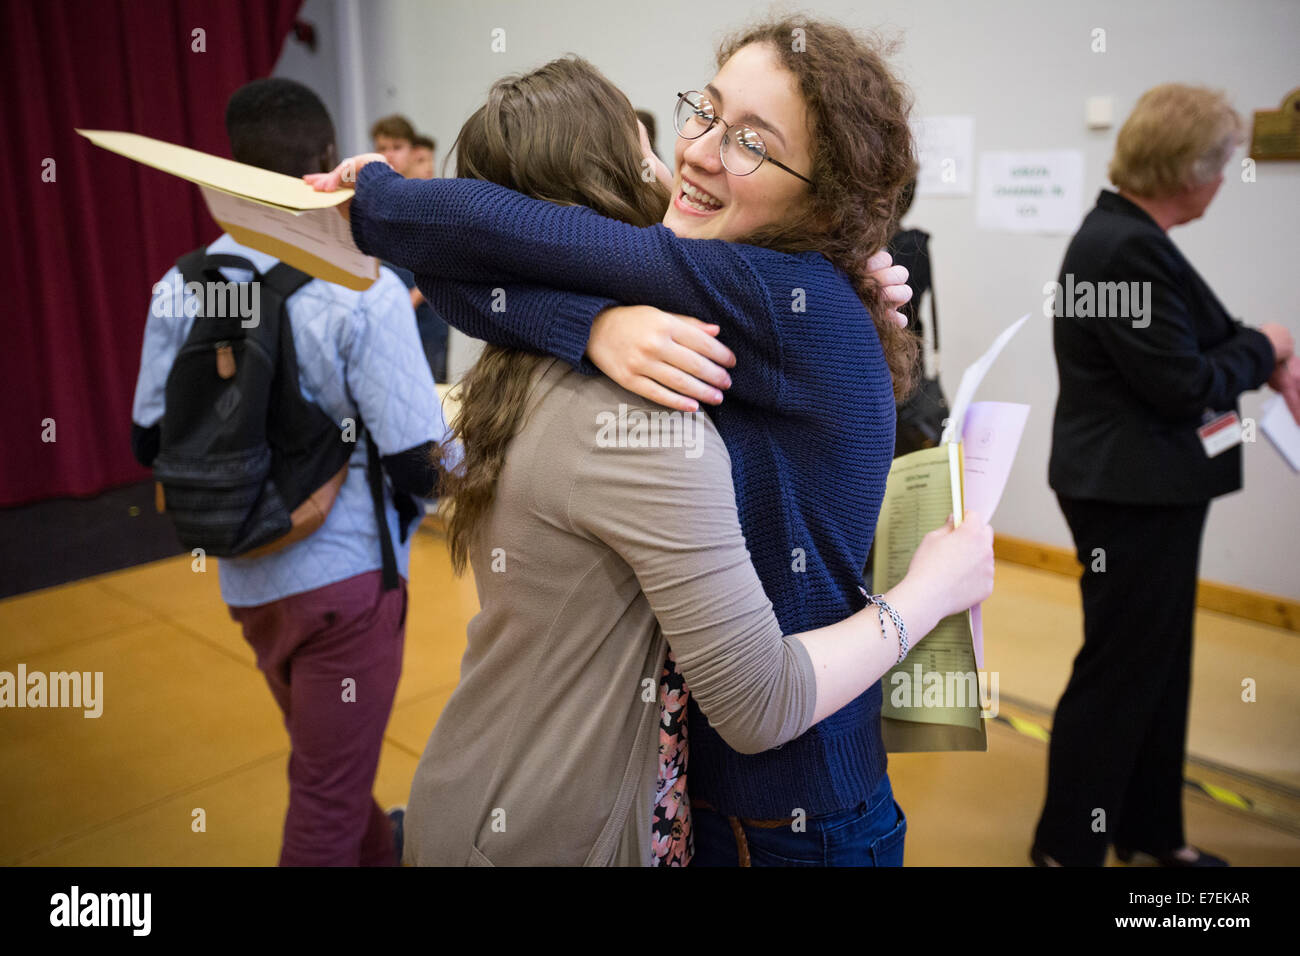 Pupils celebrate their GCSE results at Telford School, Shropshire, UK - Stock Image